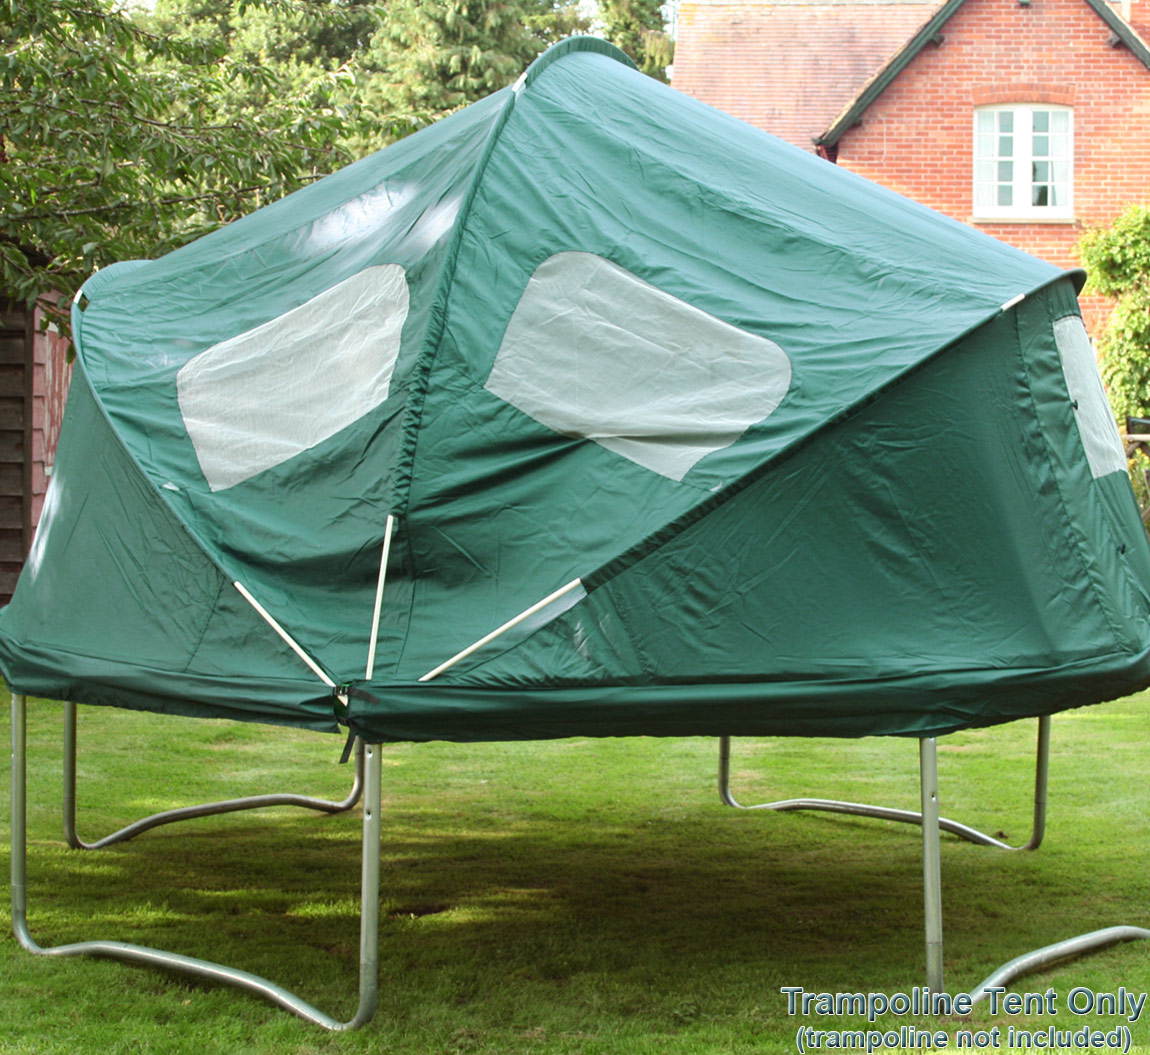 10ft Trampoline Tent